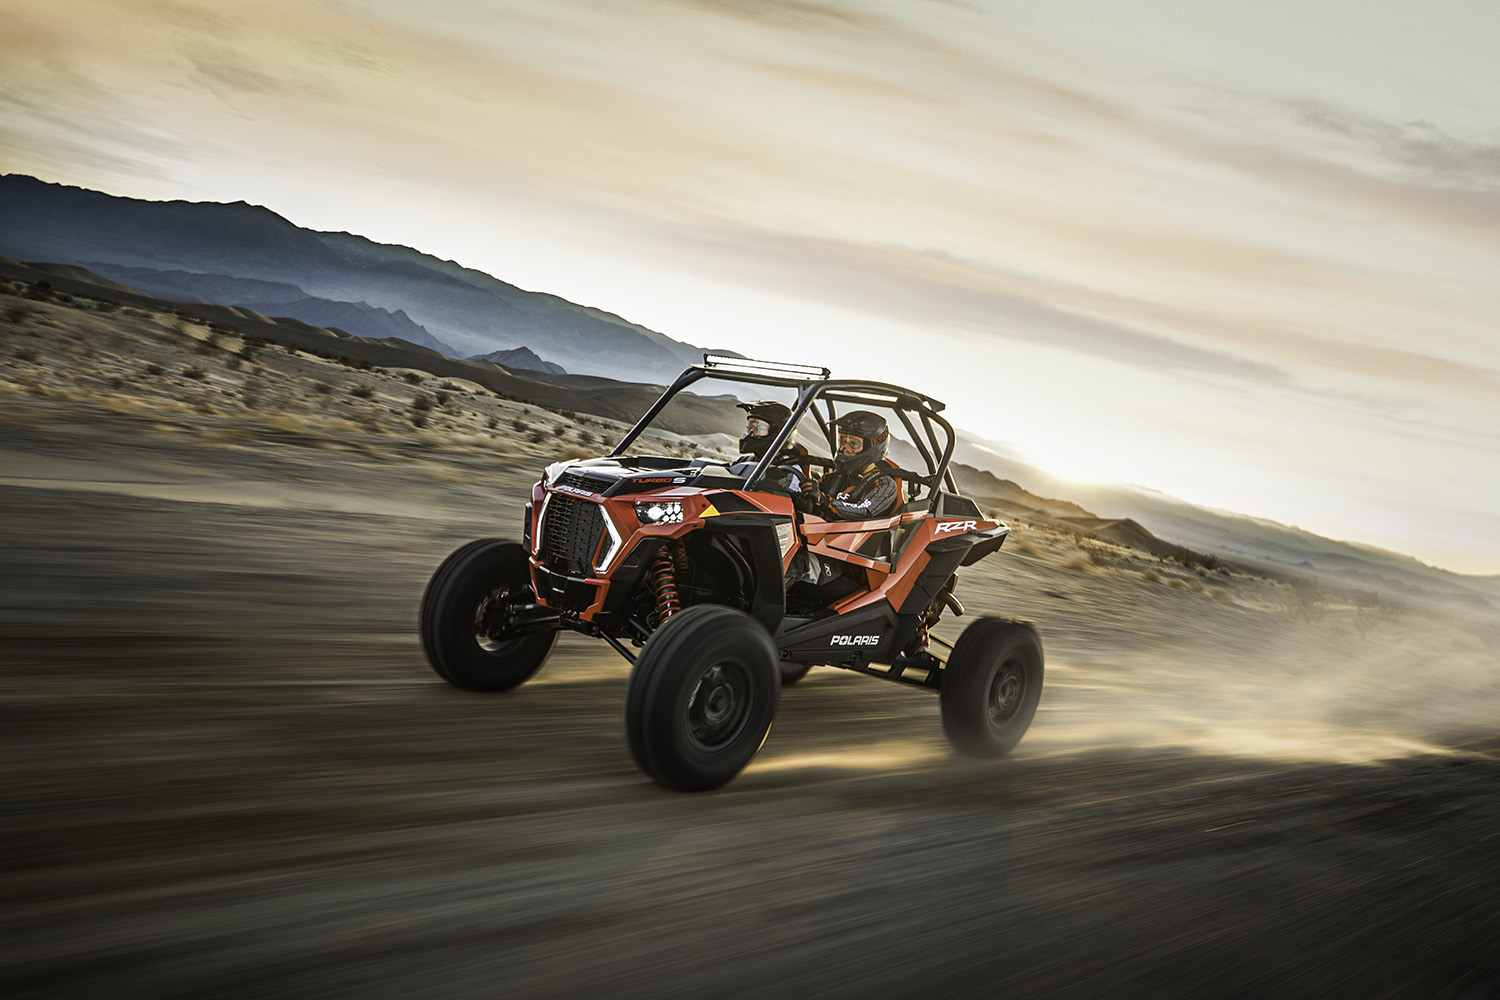 The powersports performer is put through its paces in the Nevada Desert—and doesn't disappoint, while also proving Polaris' latest monster off-roader has a soft side that is more Jaguar than John Deere. - Polaris RZR XP Turbo S